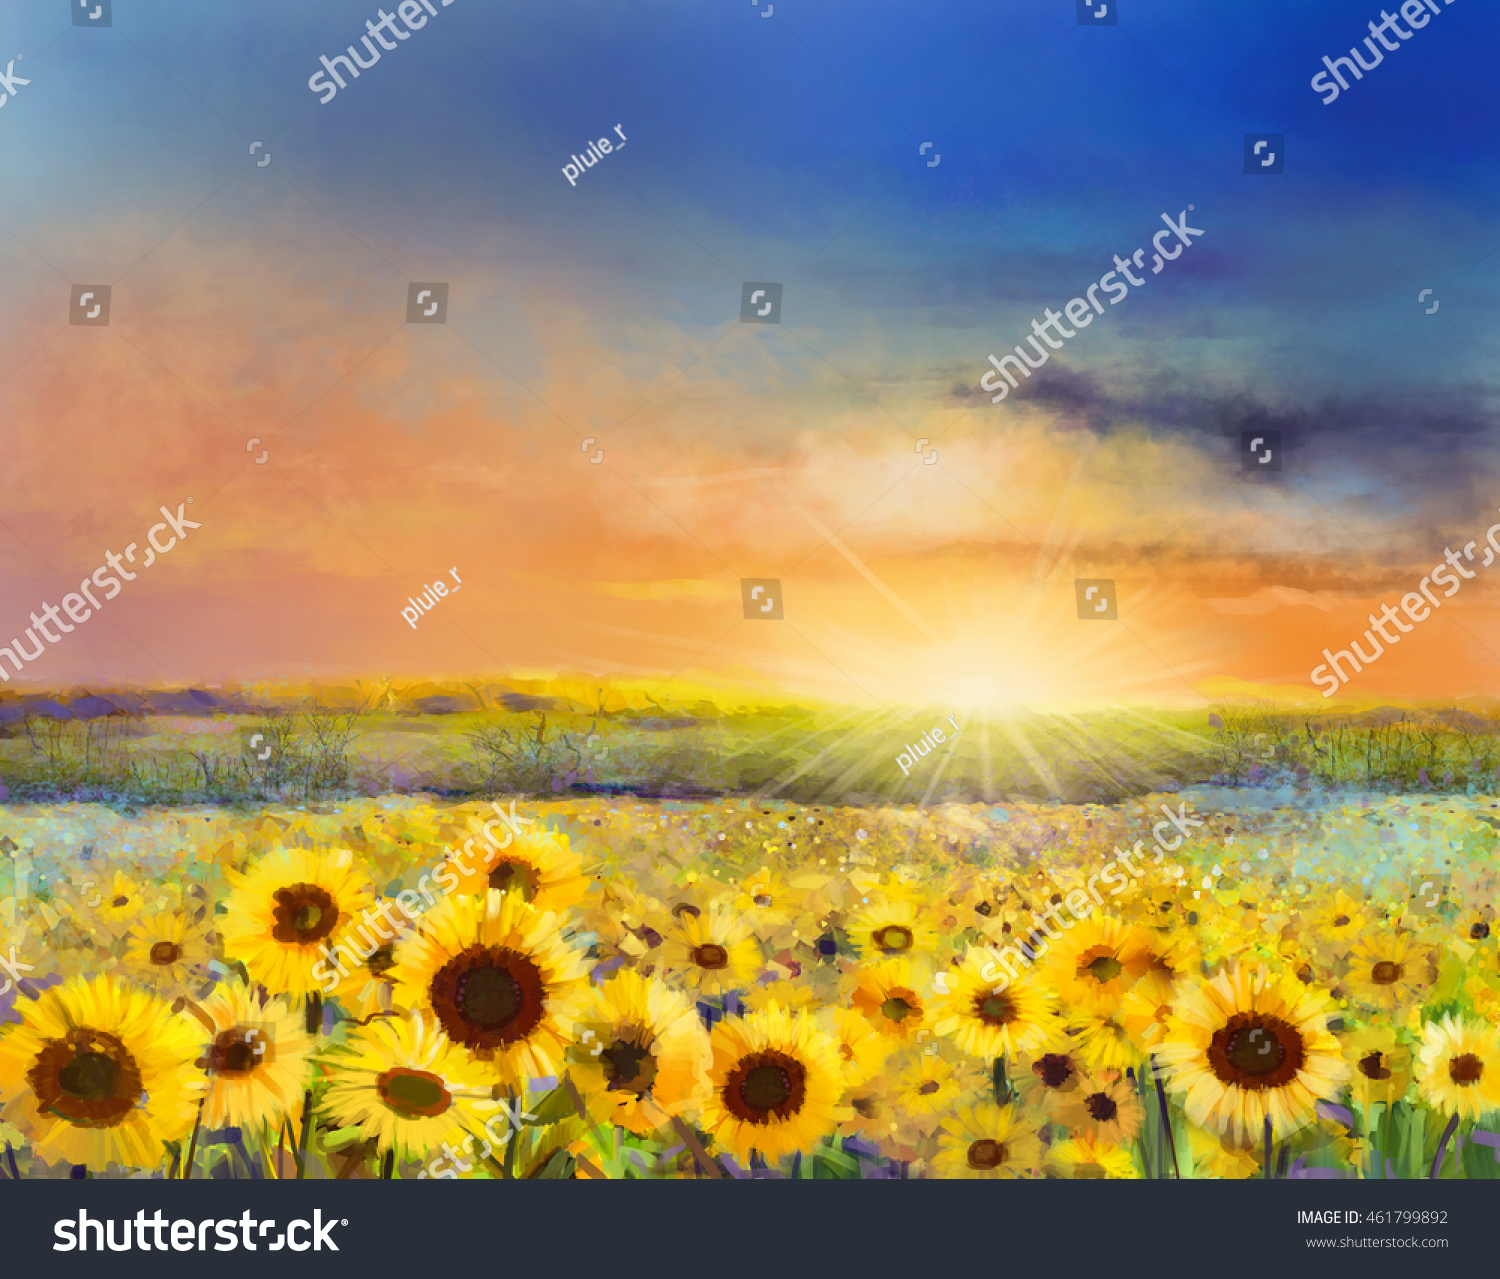 Sunflower flower blossom.Oil painting of a rural sunset landscape with a golden sunflower field Warm light of the sunset and hill color in orange and blue color at the background